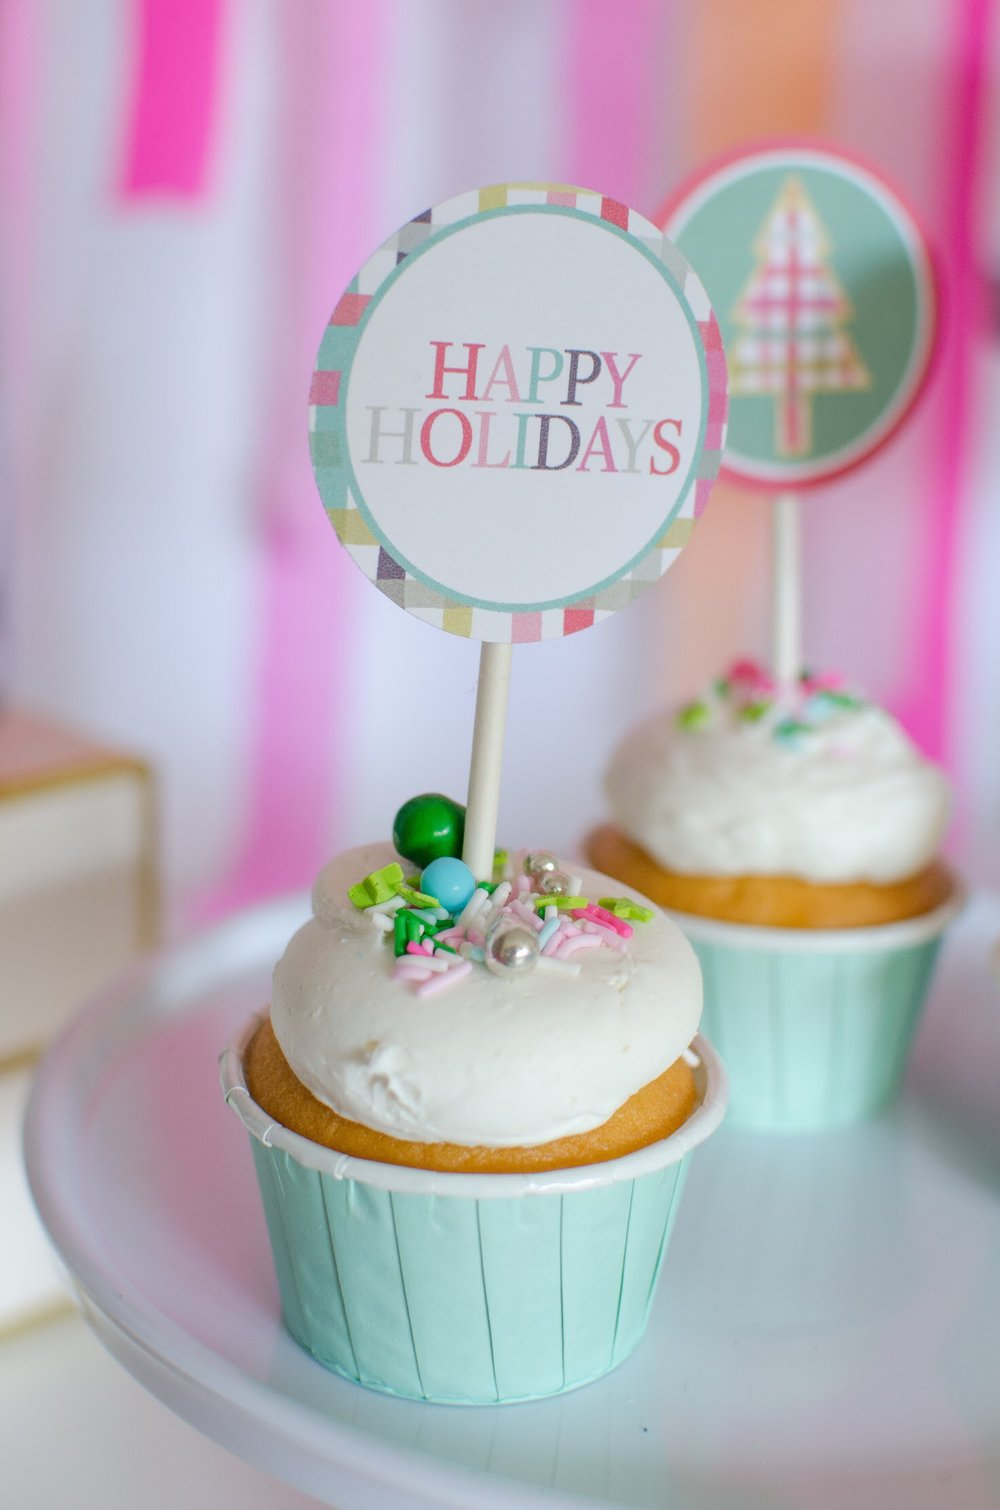 Free Happy Holidays printable cupcake toppers for Christmas from Mint Event Design. See more at www.minteventdesign.com and download your free printables #holidayparty #partyideas #christmasparty #holidaypartyideas #llamaparty #llamalove #partyprintables #freeprintables